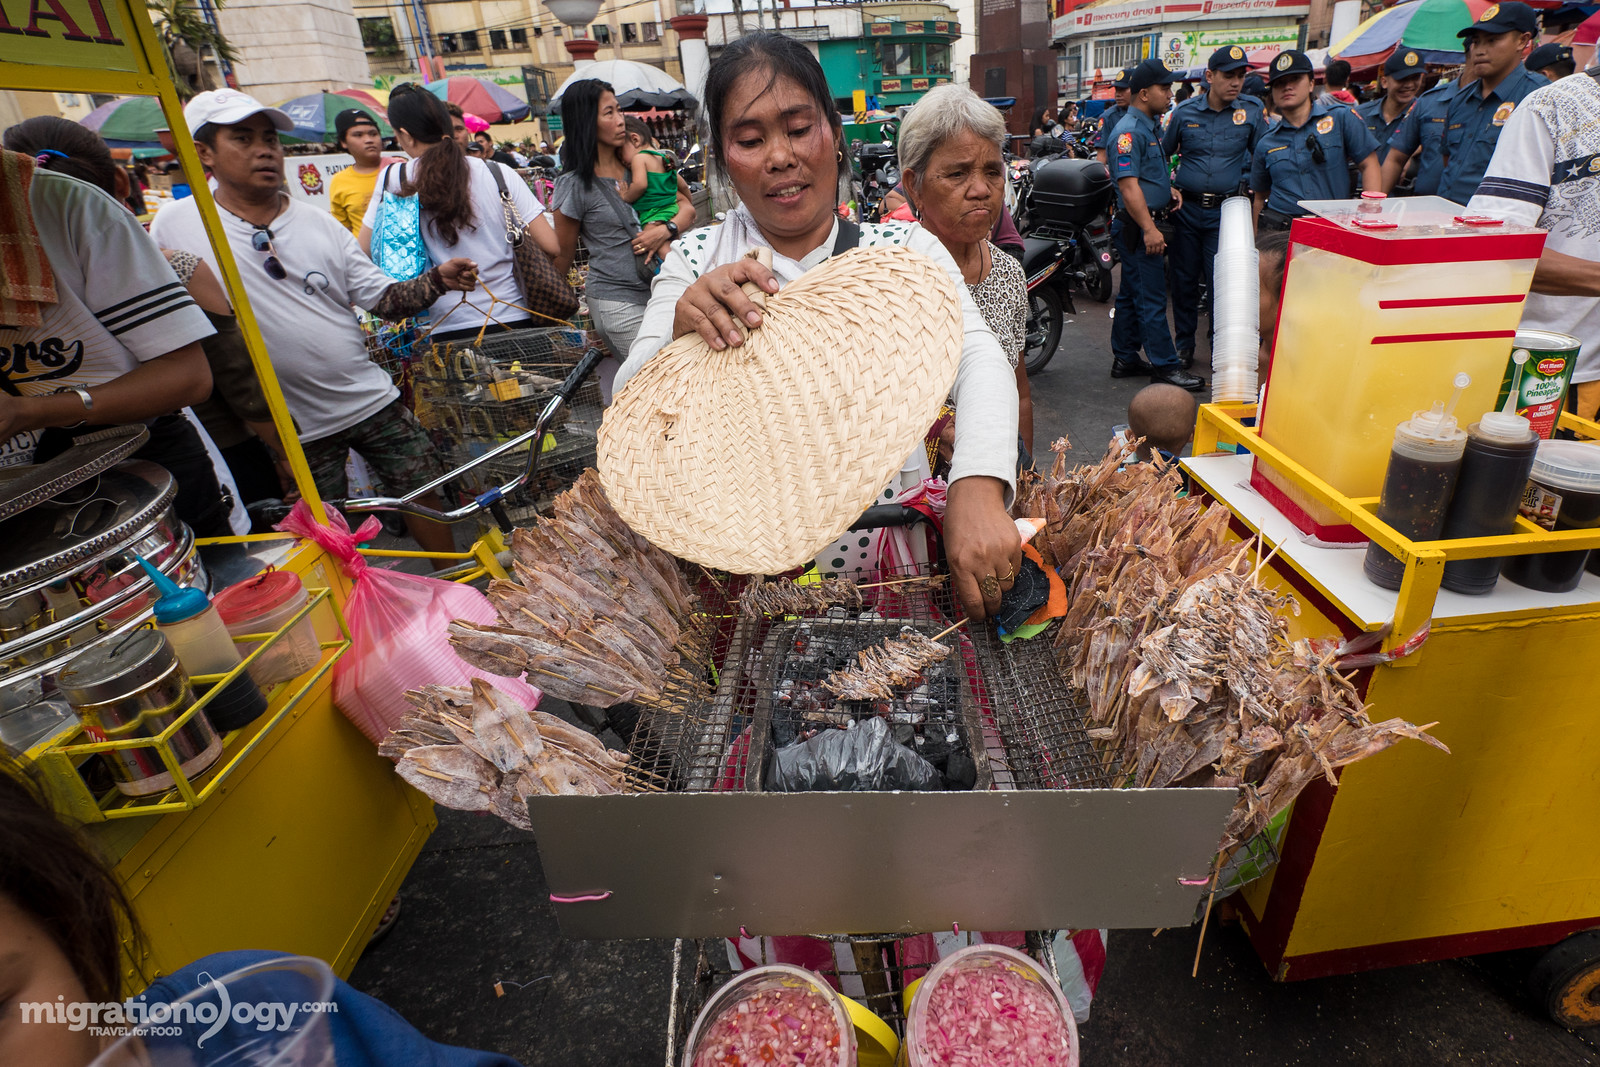 Filipino street food snacks